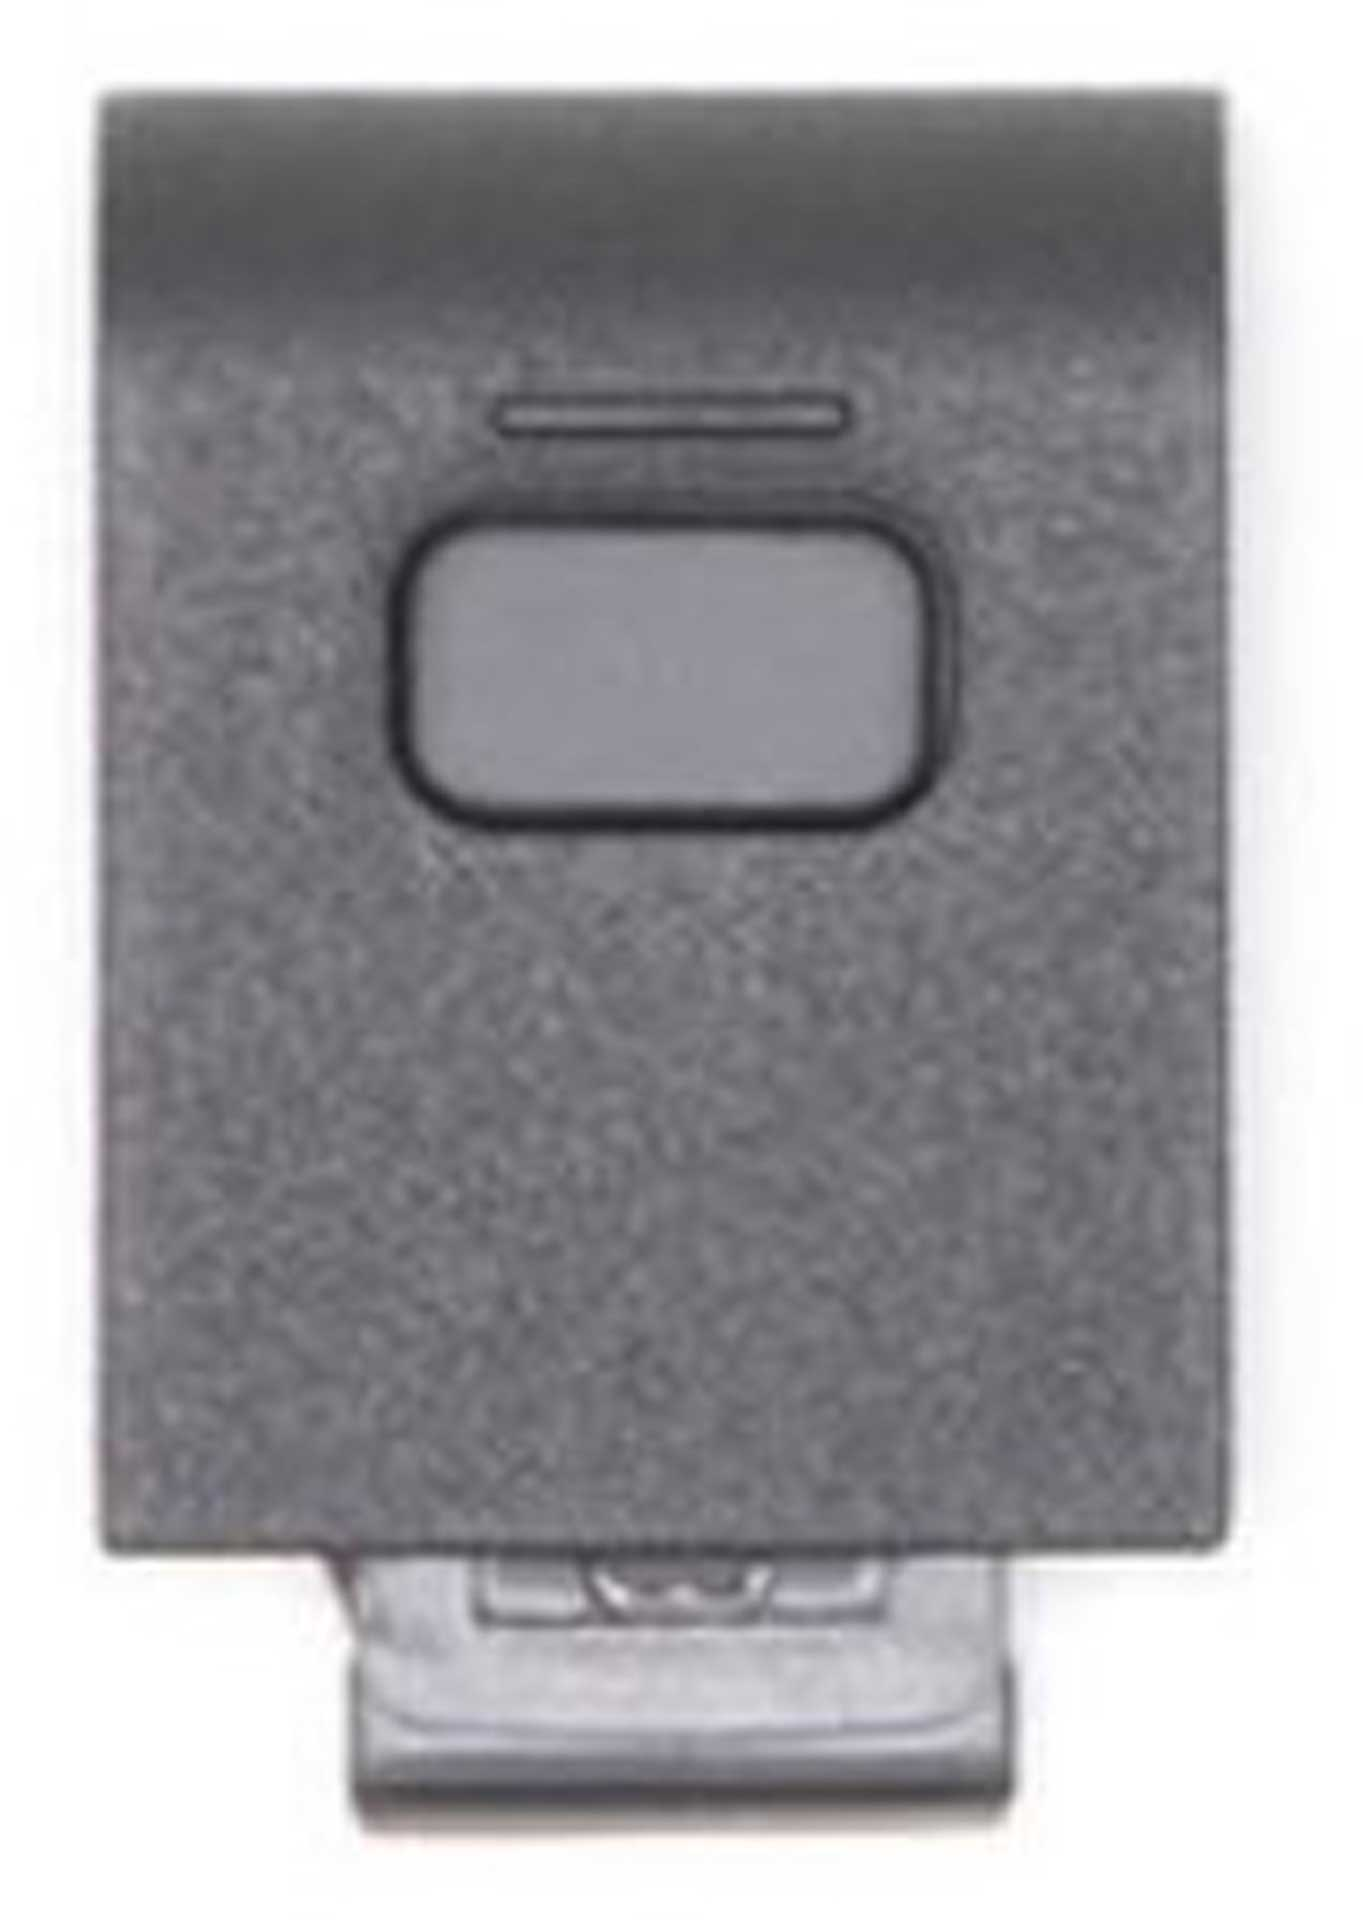 DJI OSMO ACTION USB-C COVER